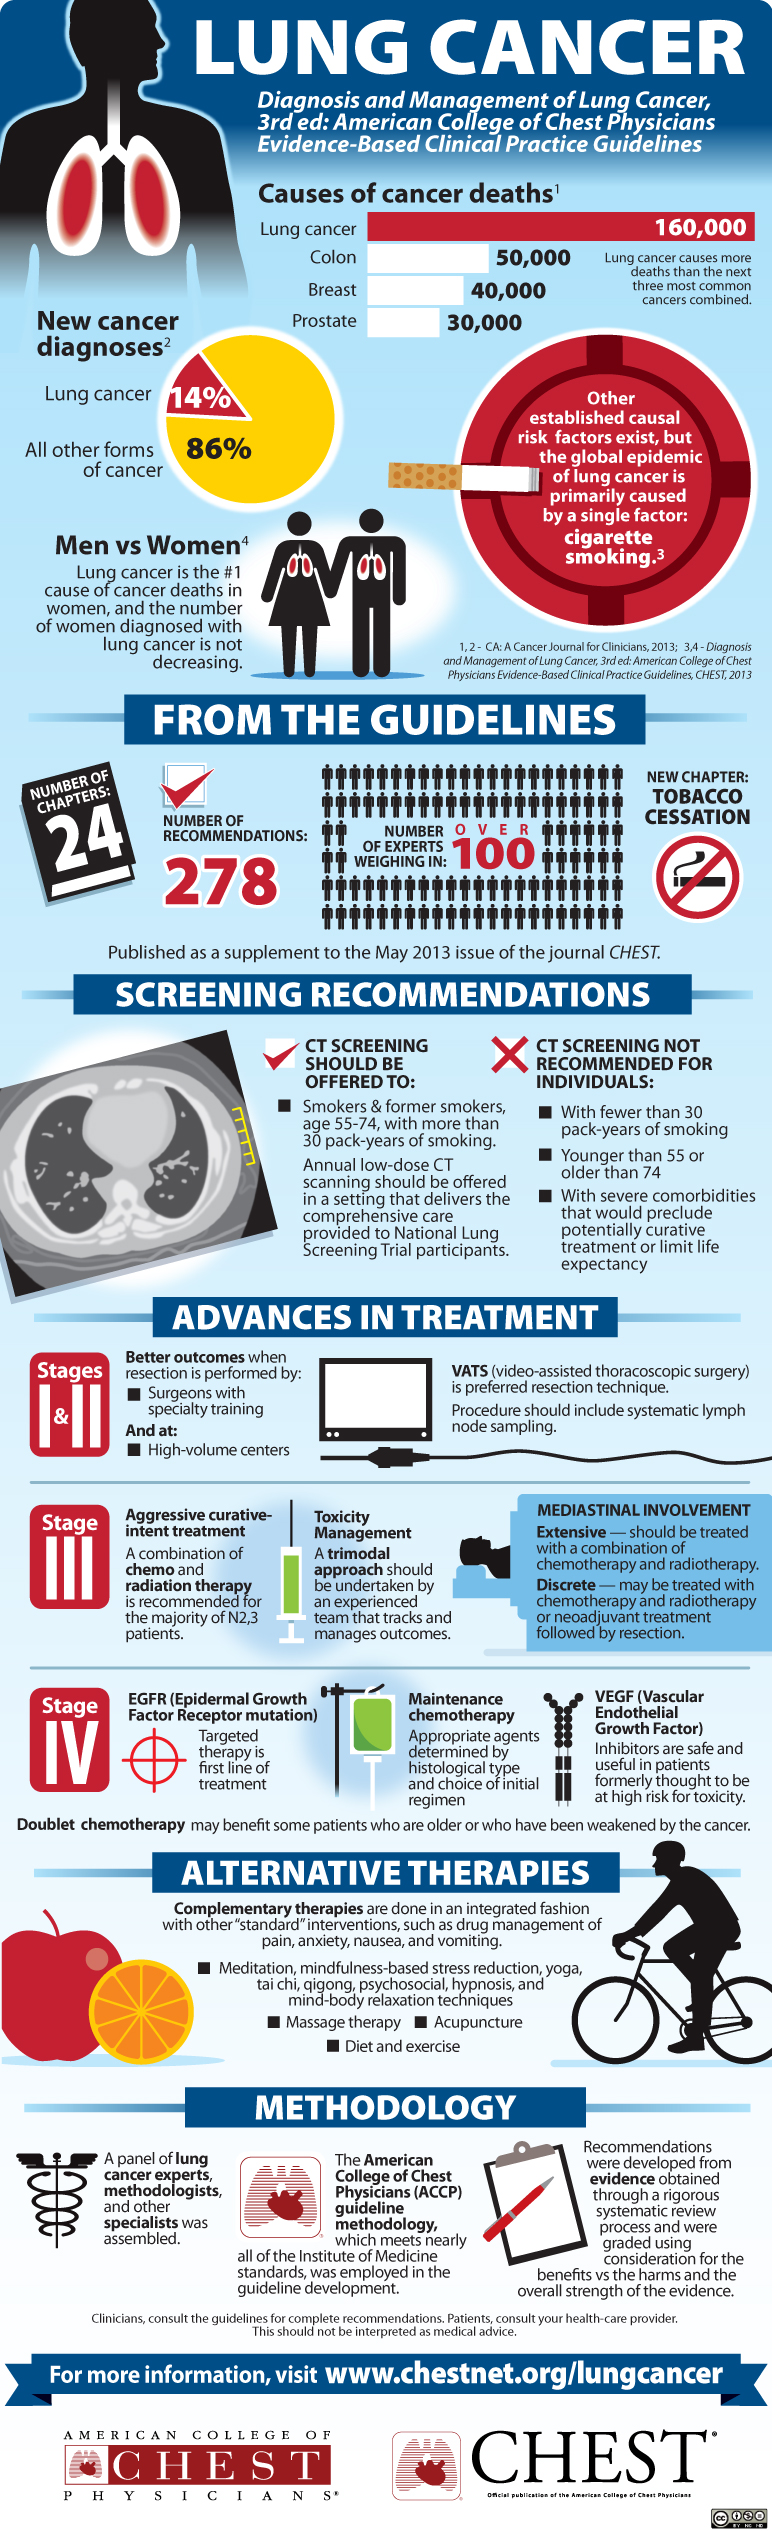 Lung Cancer Trends and Facts